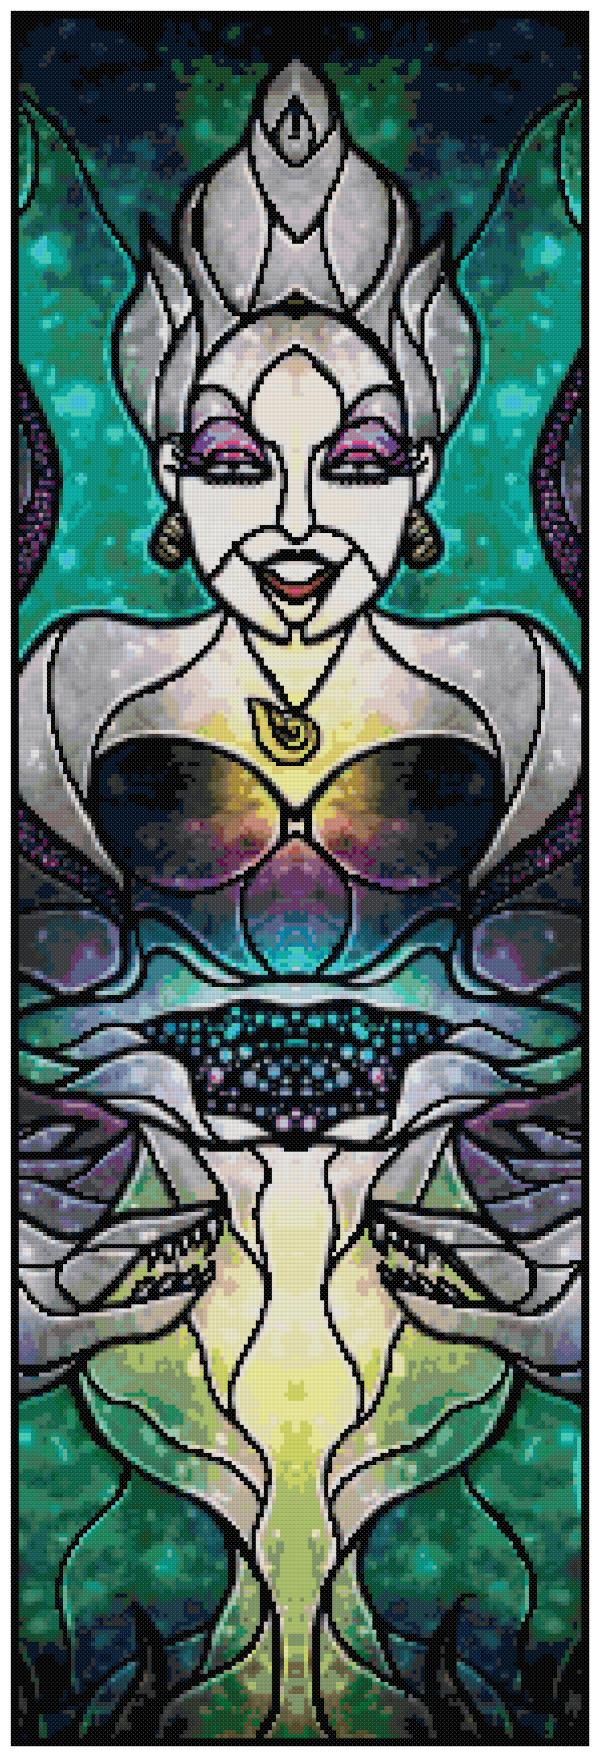 Ursula Cross Stitch Pattern